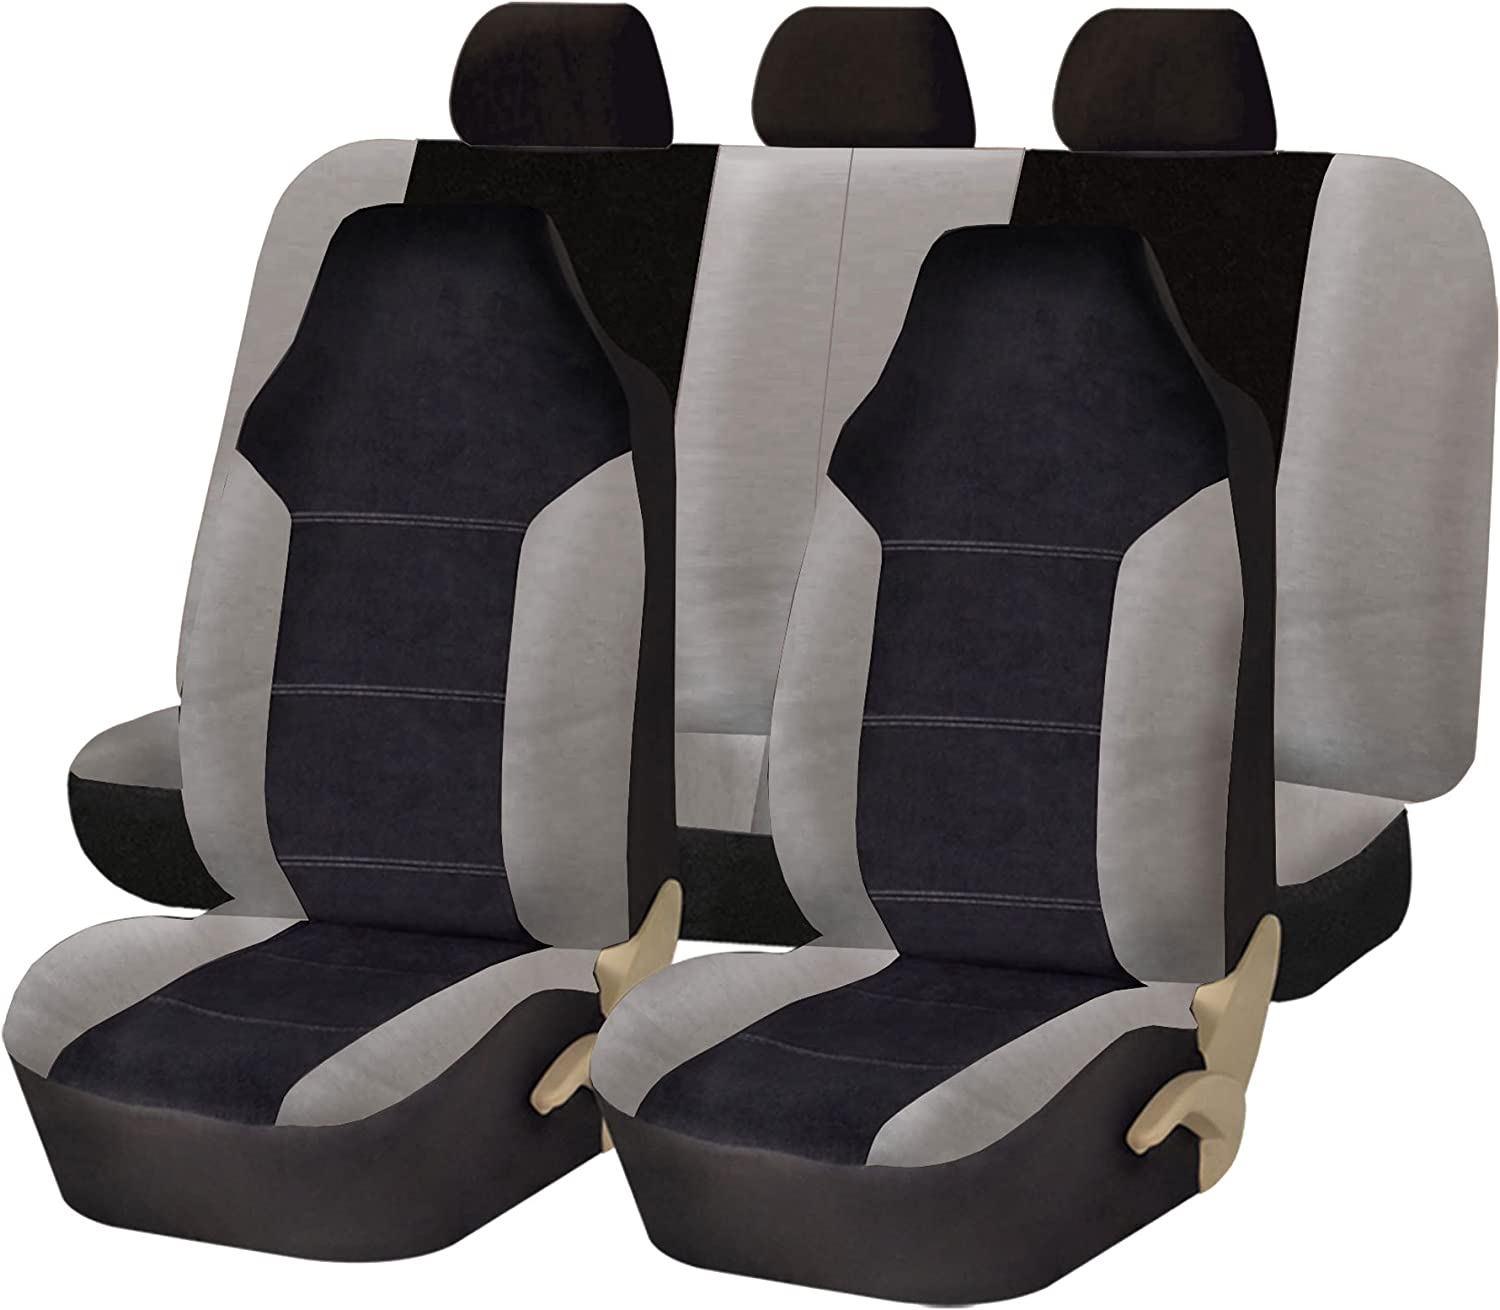 FH Group FB103115 Leather/Velour Seat Covers (Airbag Compatible & Split Rear Bench) Gray/Black w Fit Most Car, Truck, SUV, or Van